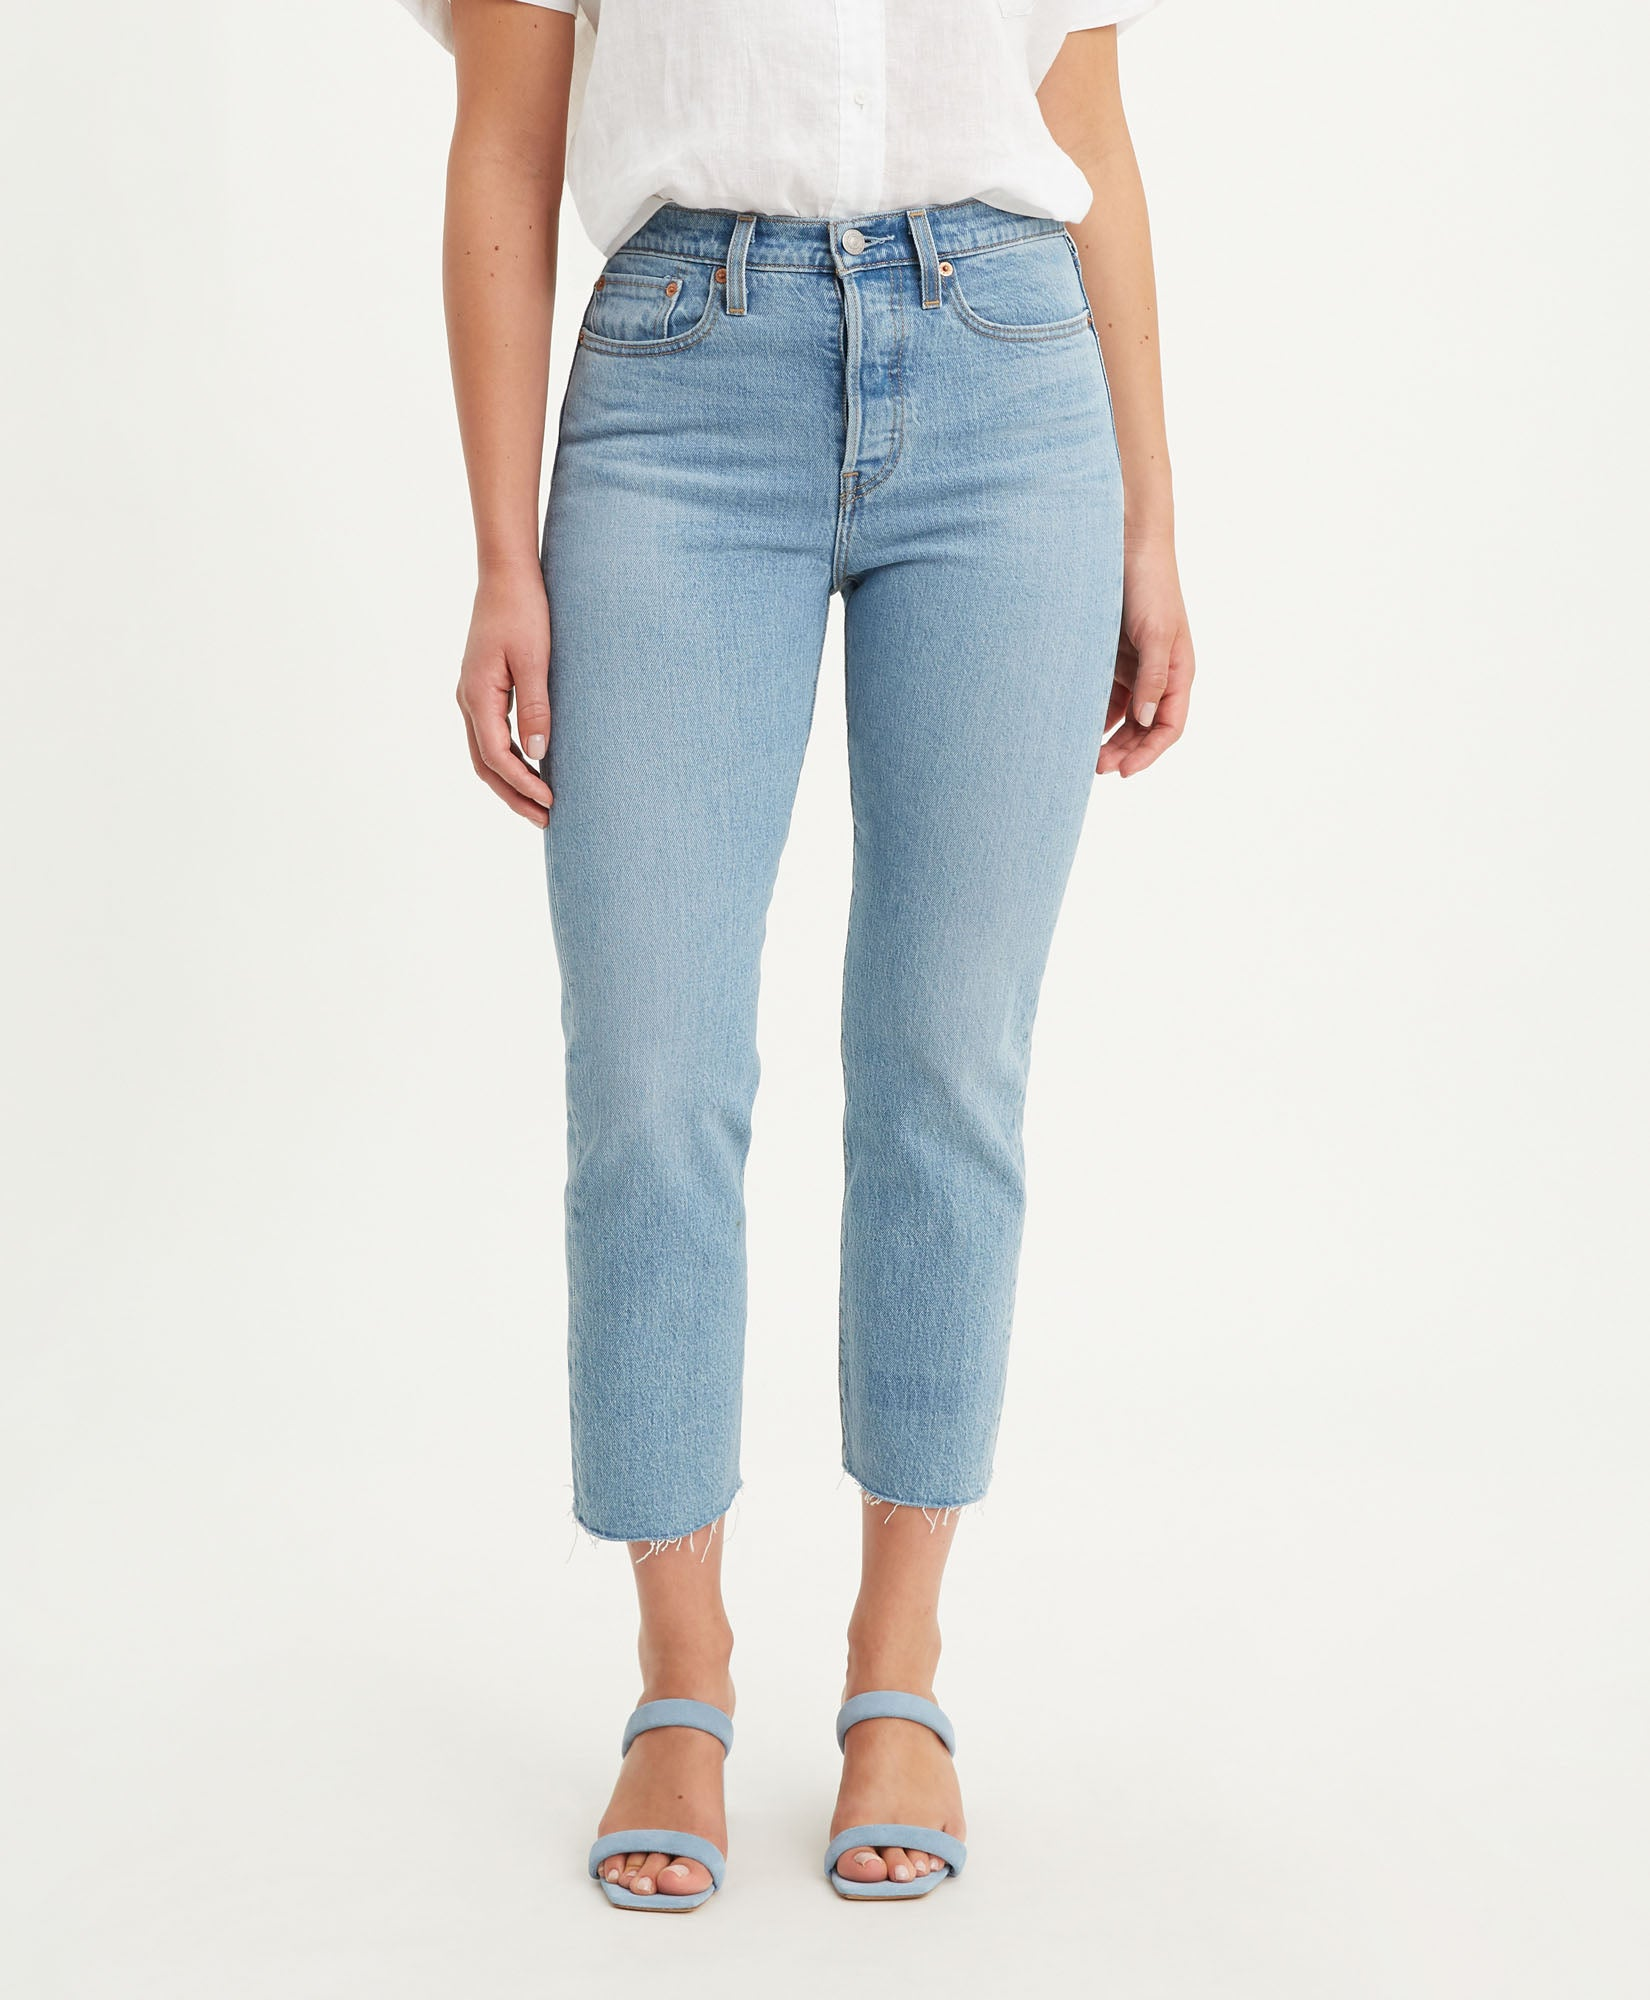 LEVIS W'S PANTS WEDGIE FIT STRAIGHT WOMEN'S JEANS